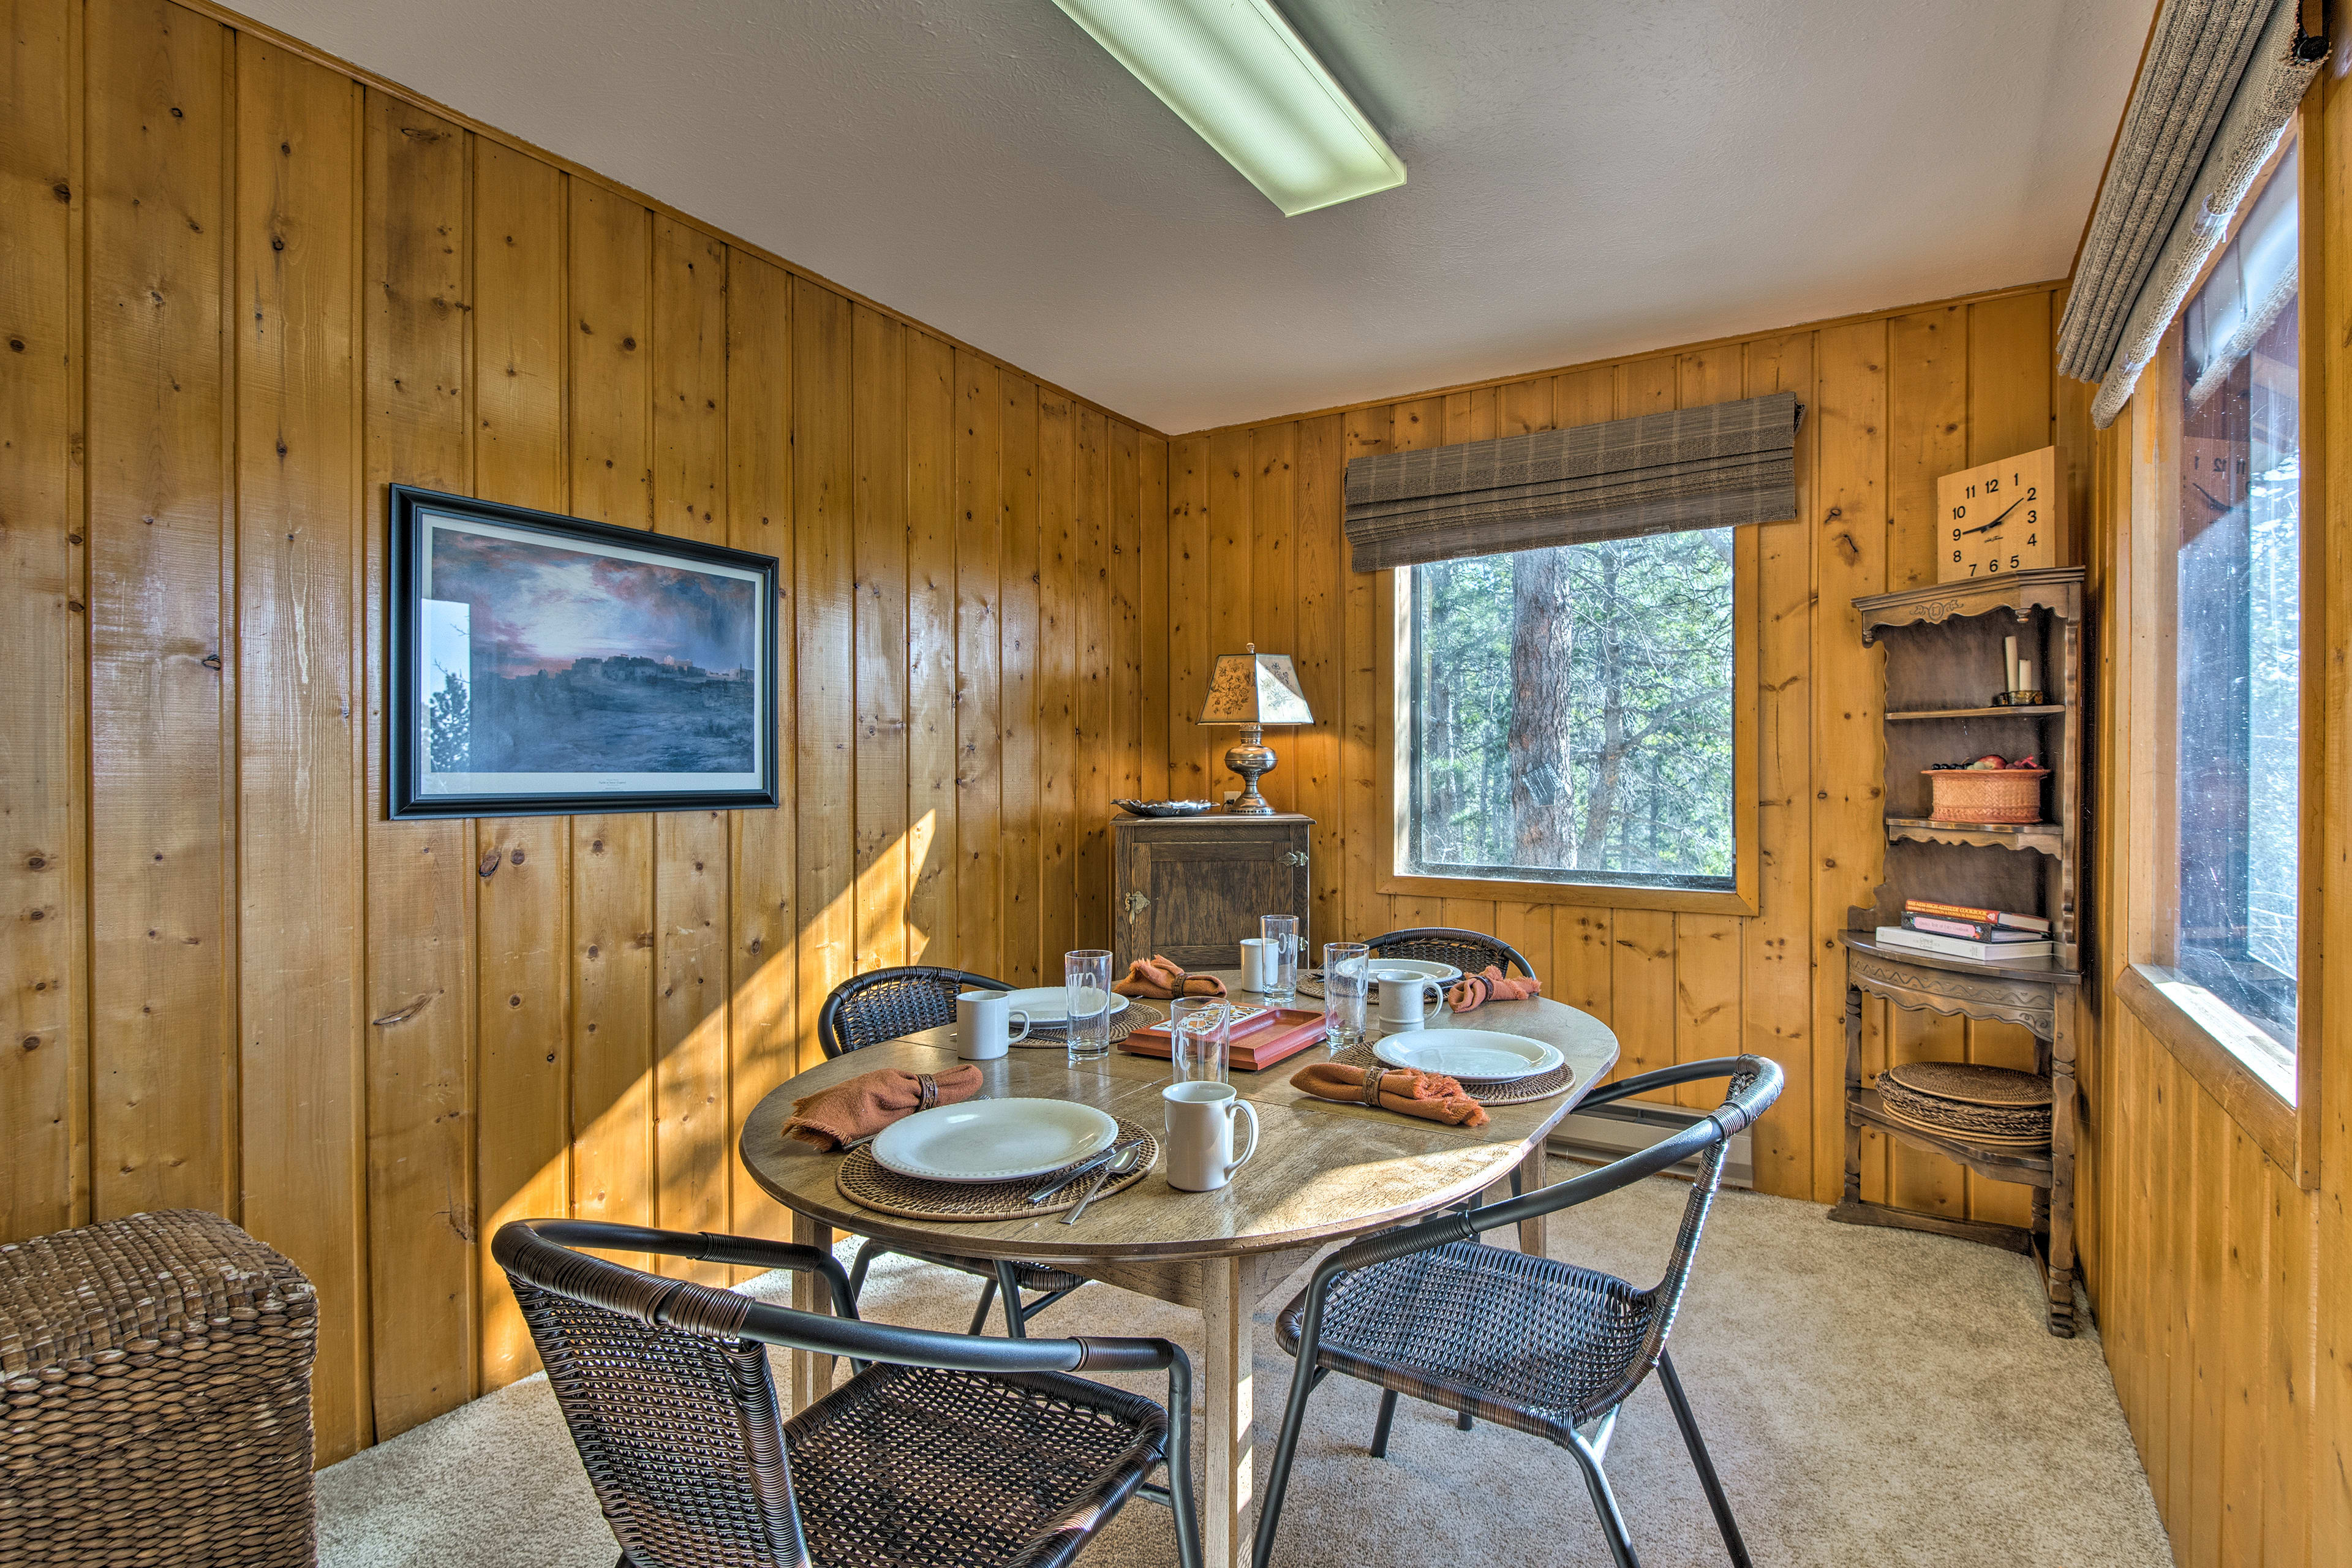 Family dinners will be a treat on this 4-person dining table.